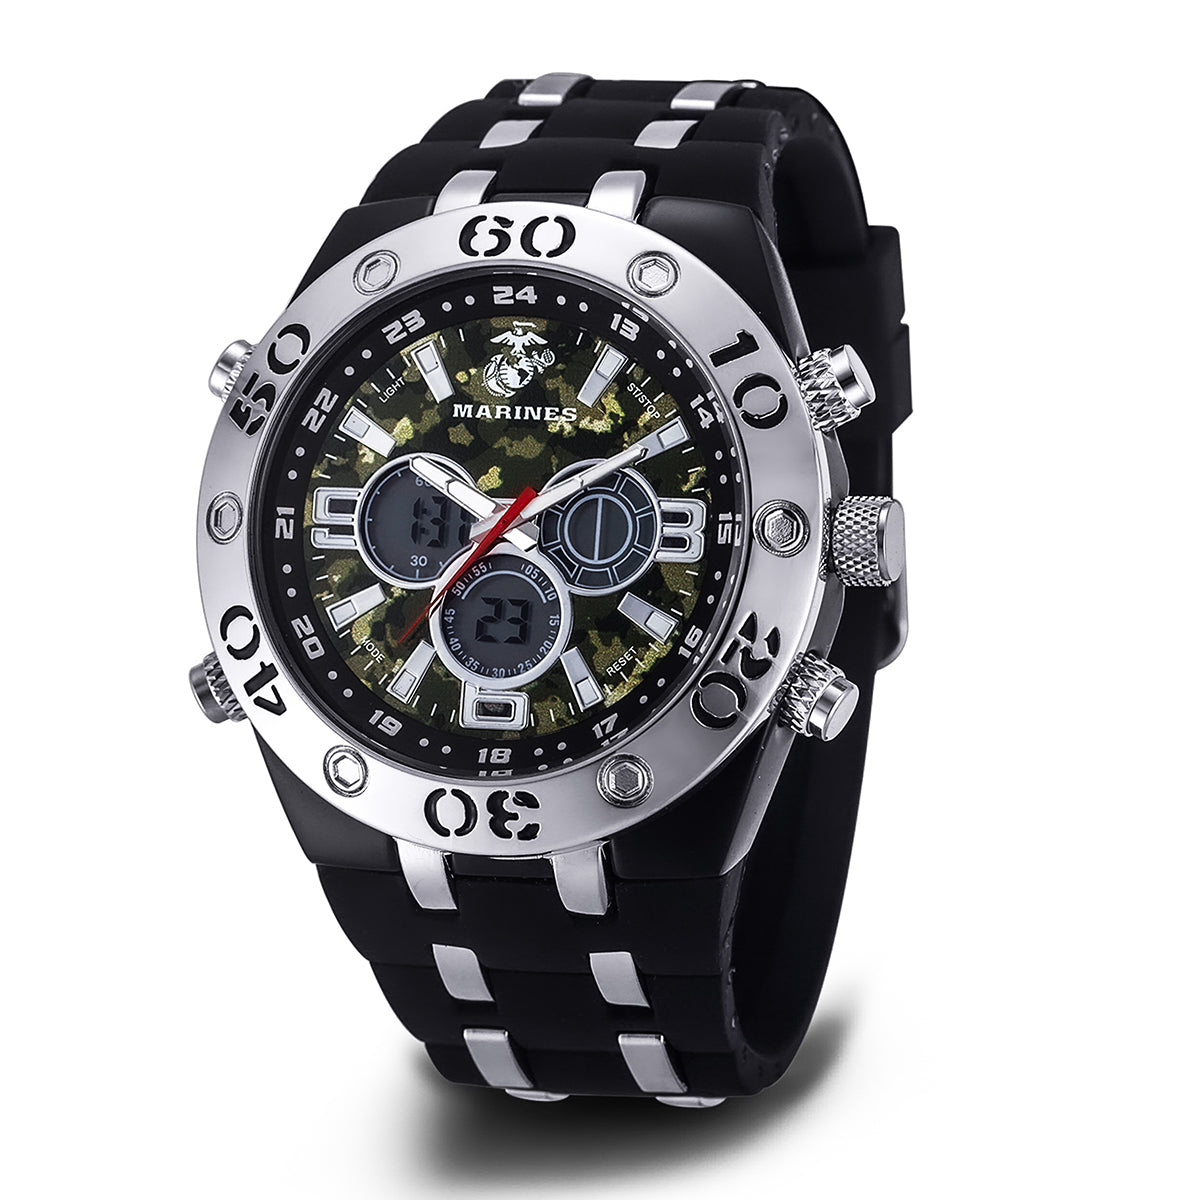 U.S. Marine Corps C23 | Analog-Digital Display Multifunction Quartz Watch with Camouflage Dial